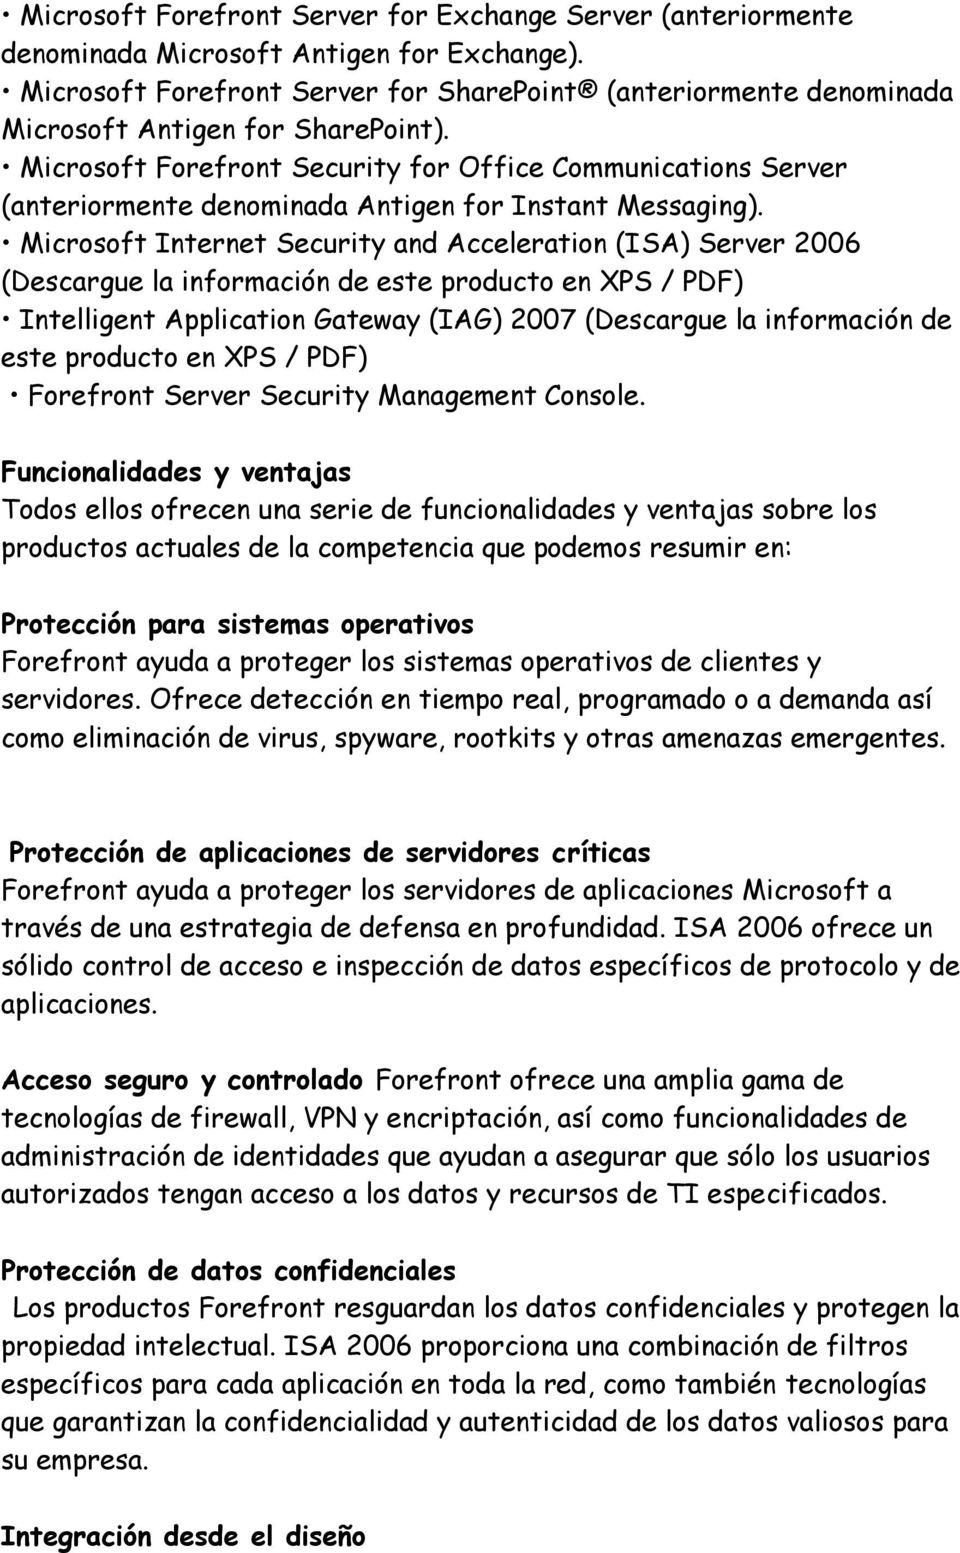 Microsoft Forefront Security for Office Communications Server (anteriormente denominada Antigen for Instant Messaging).